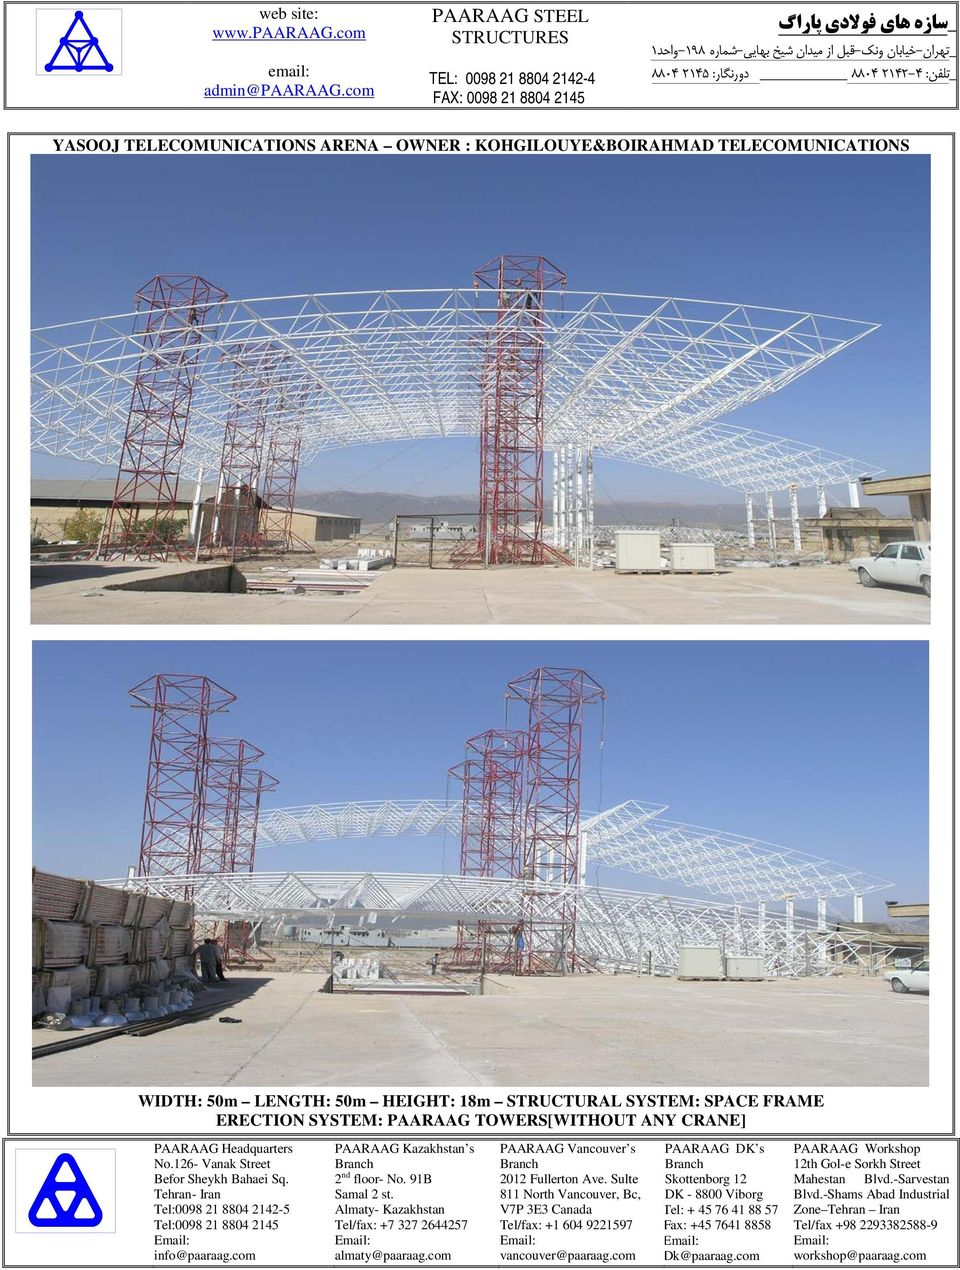 50m LENGTH: 50m HEIGHT: 18m STRUCTURAL SYSTEM: